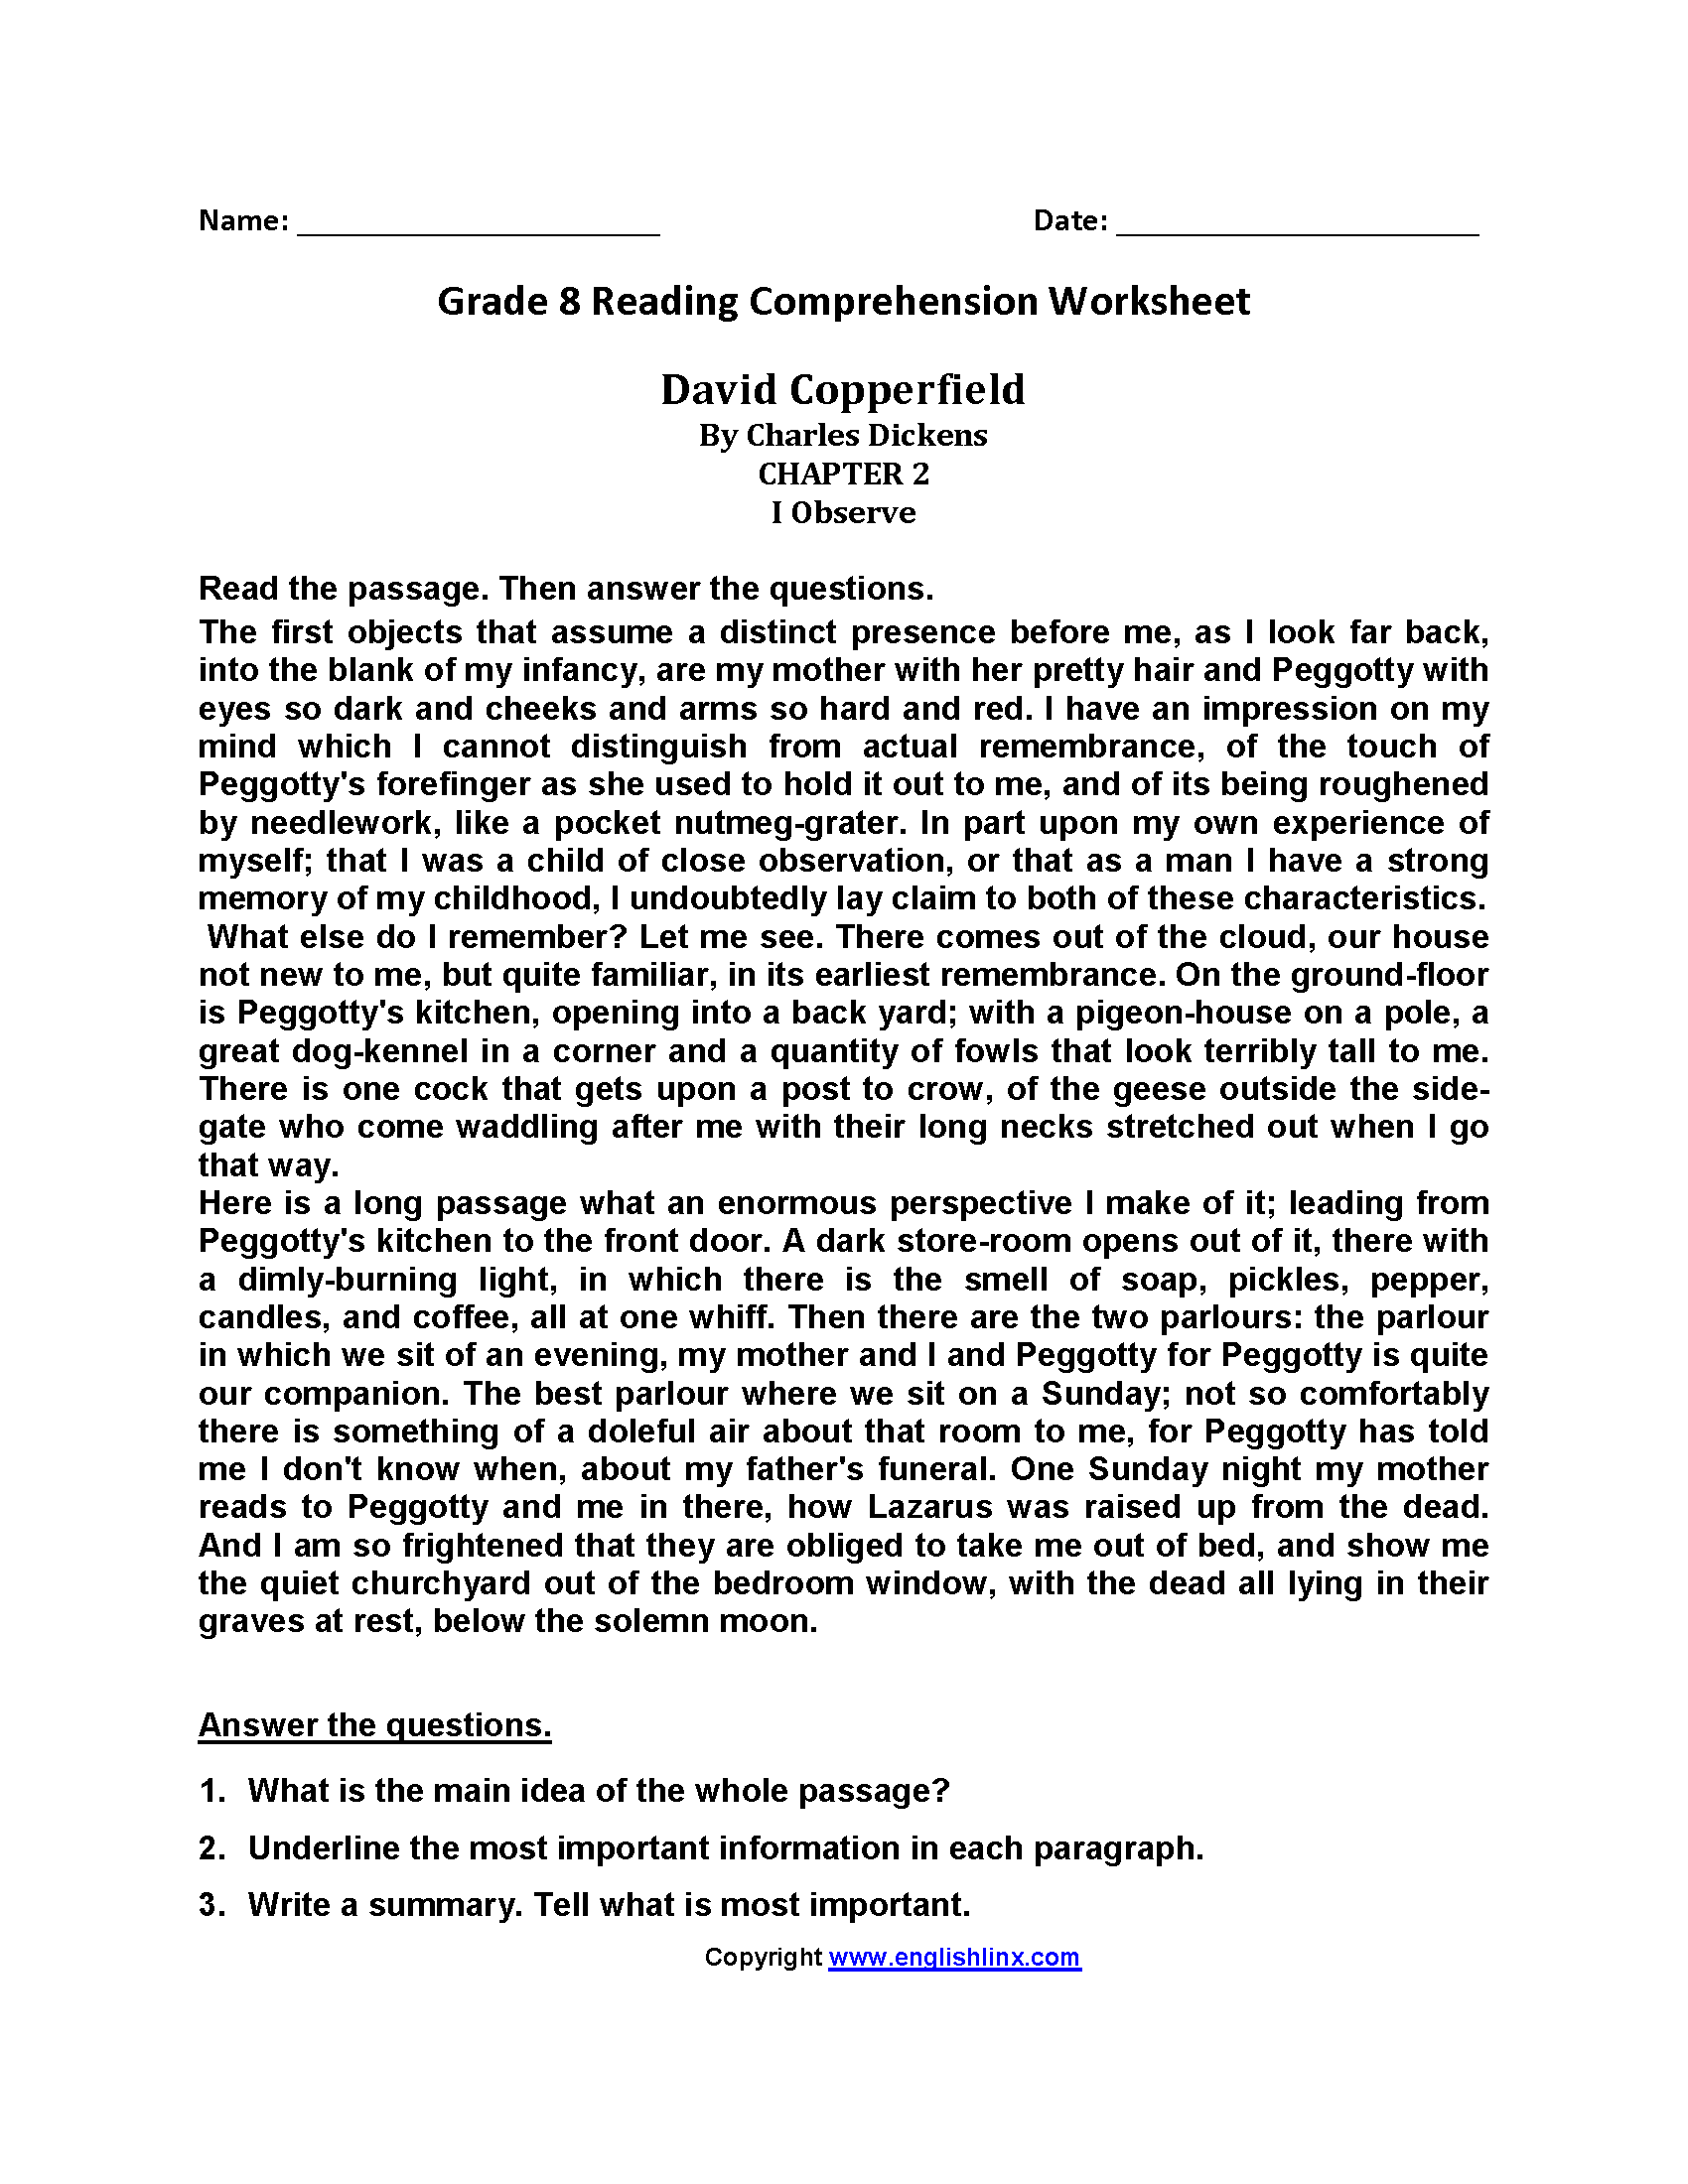 reading worksheets eighth grade reading worksheets david copperfield eighth grade reading worksheets